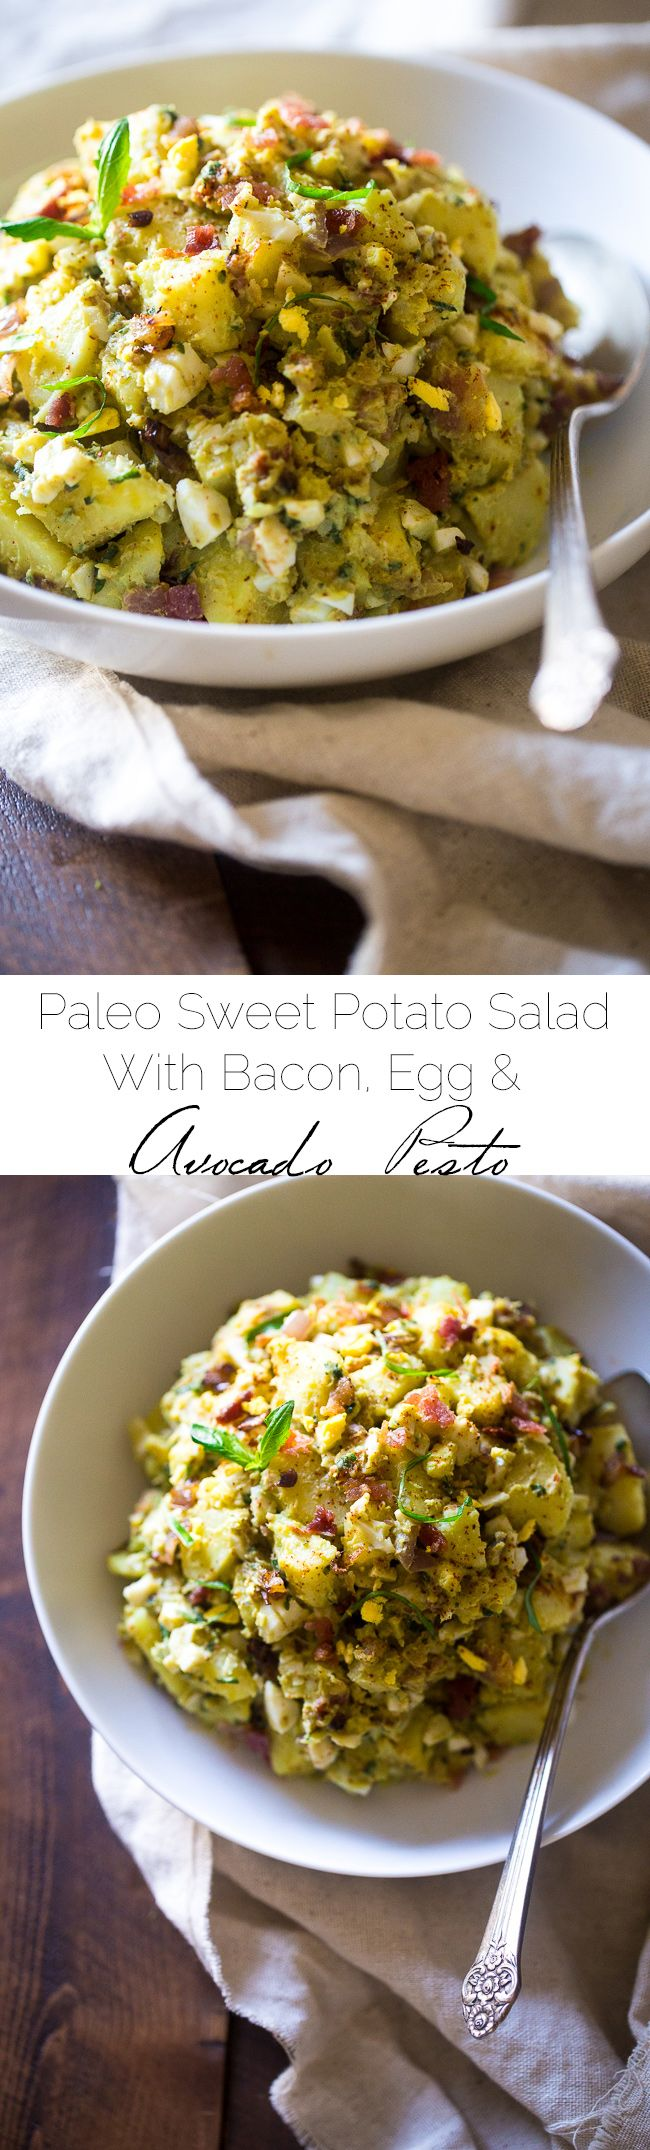 Paleo Sweet Potato Salad with Bacon, Eggs and Avocado Pesto – A healthy side dish that is SUPER creamy, easy to make and always a crowd pleaser! You won't even miss the mayonnaise!   Foodfaithfitness.com   @FoodFaithFit